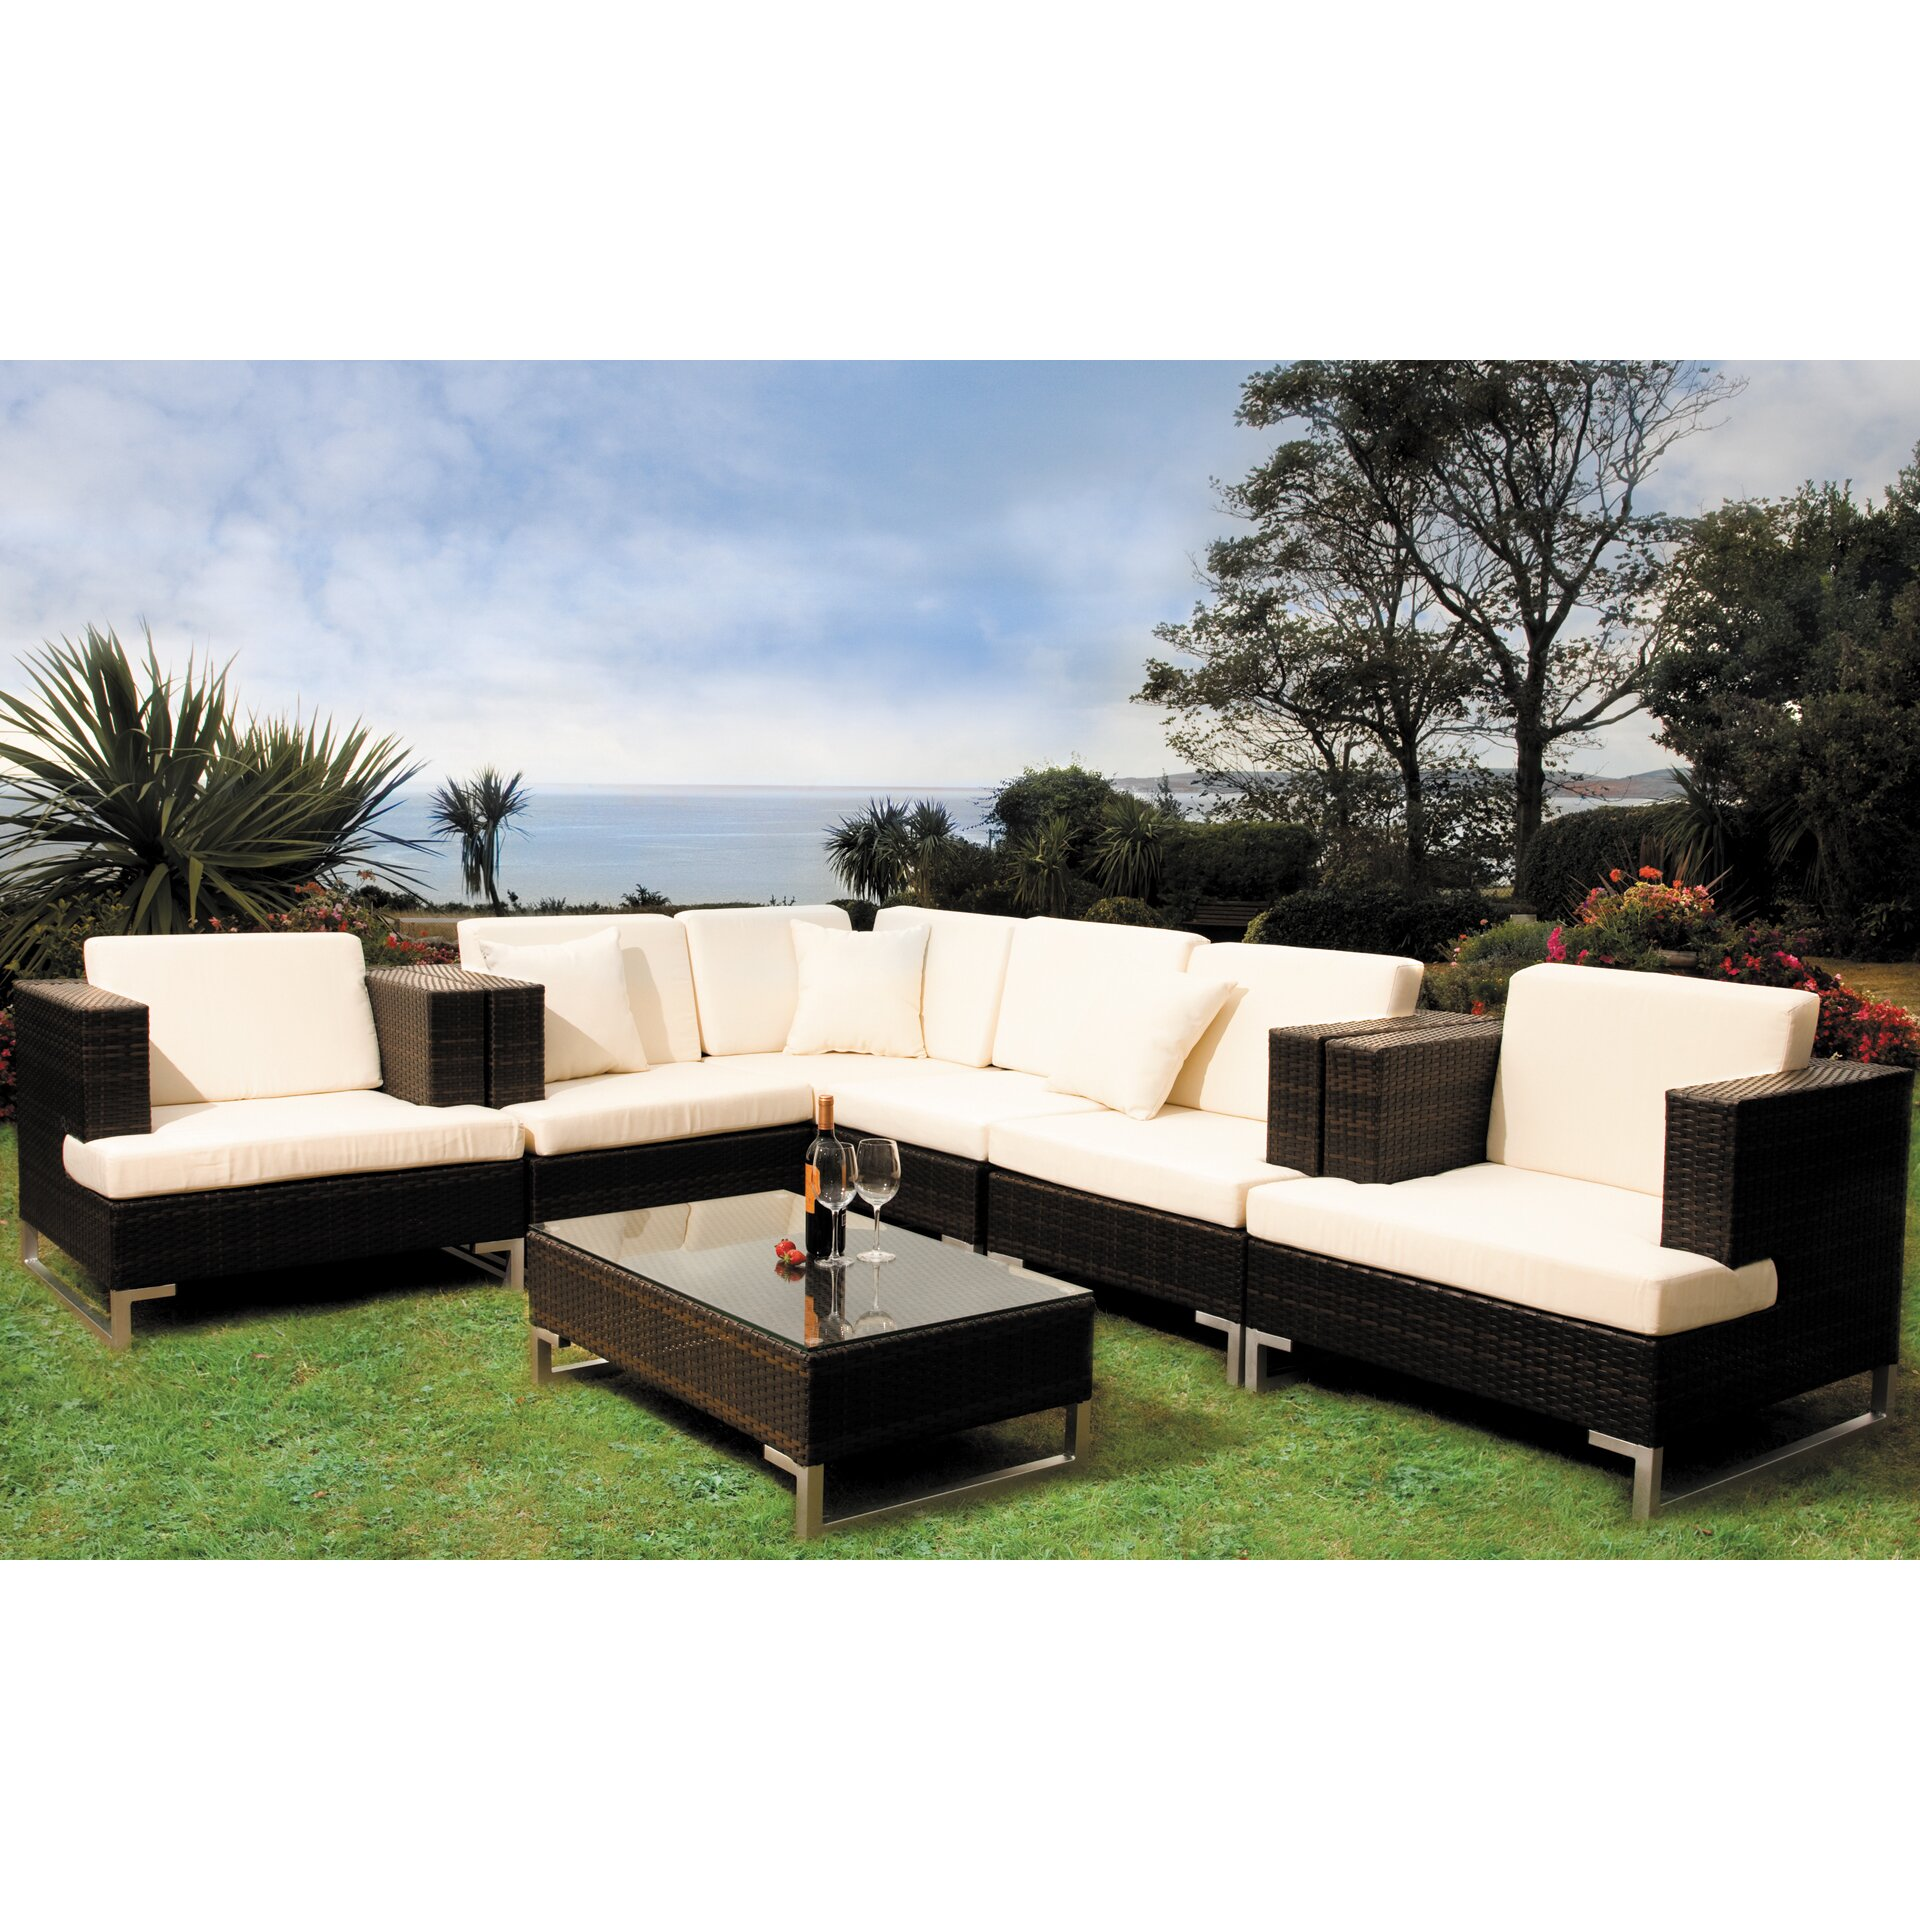 Cozy bay manhattan 6 seater sectional sofa set with for Sectional sofa 6 seater